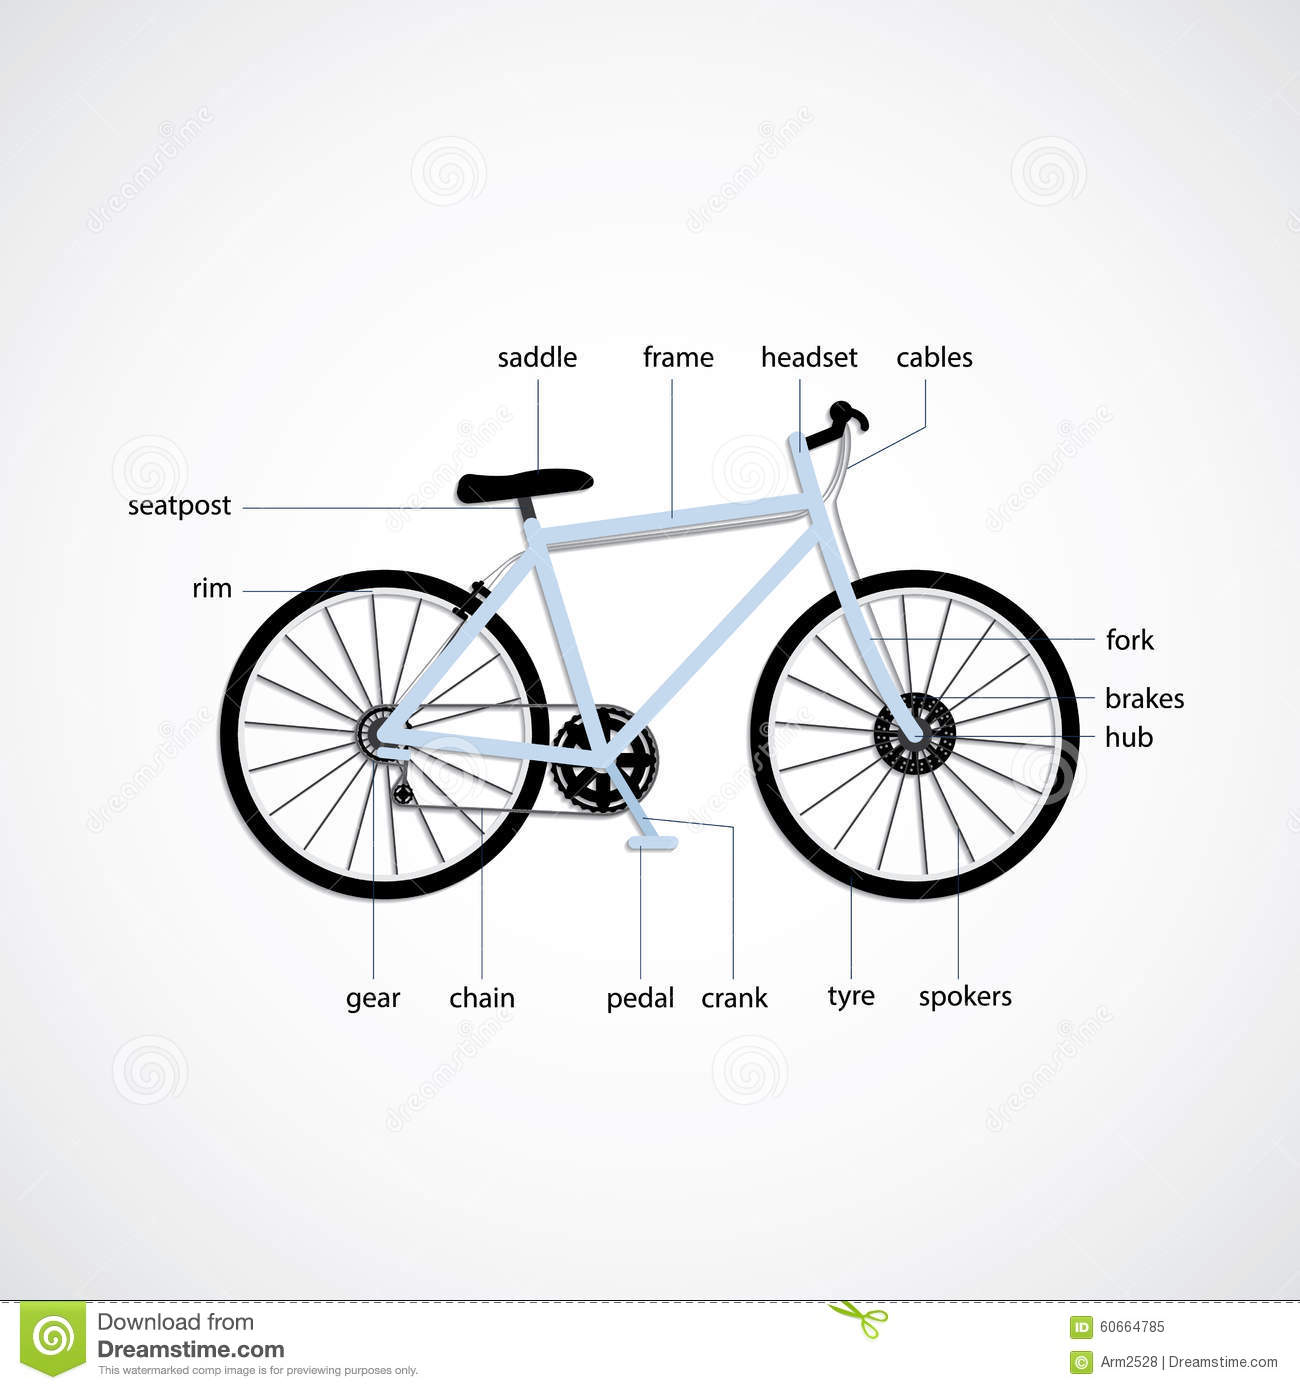 Simple bicycle illustration - photo#39